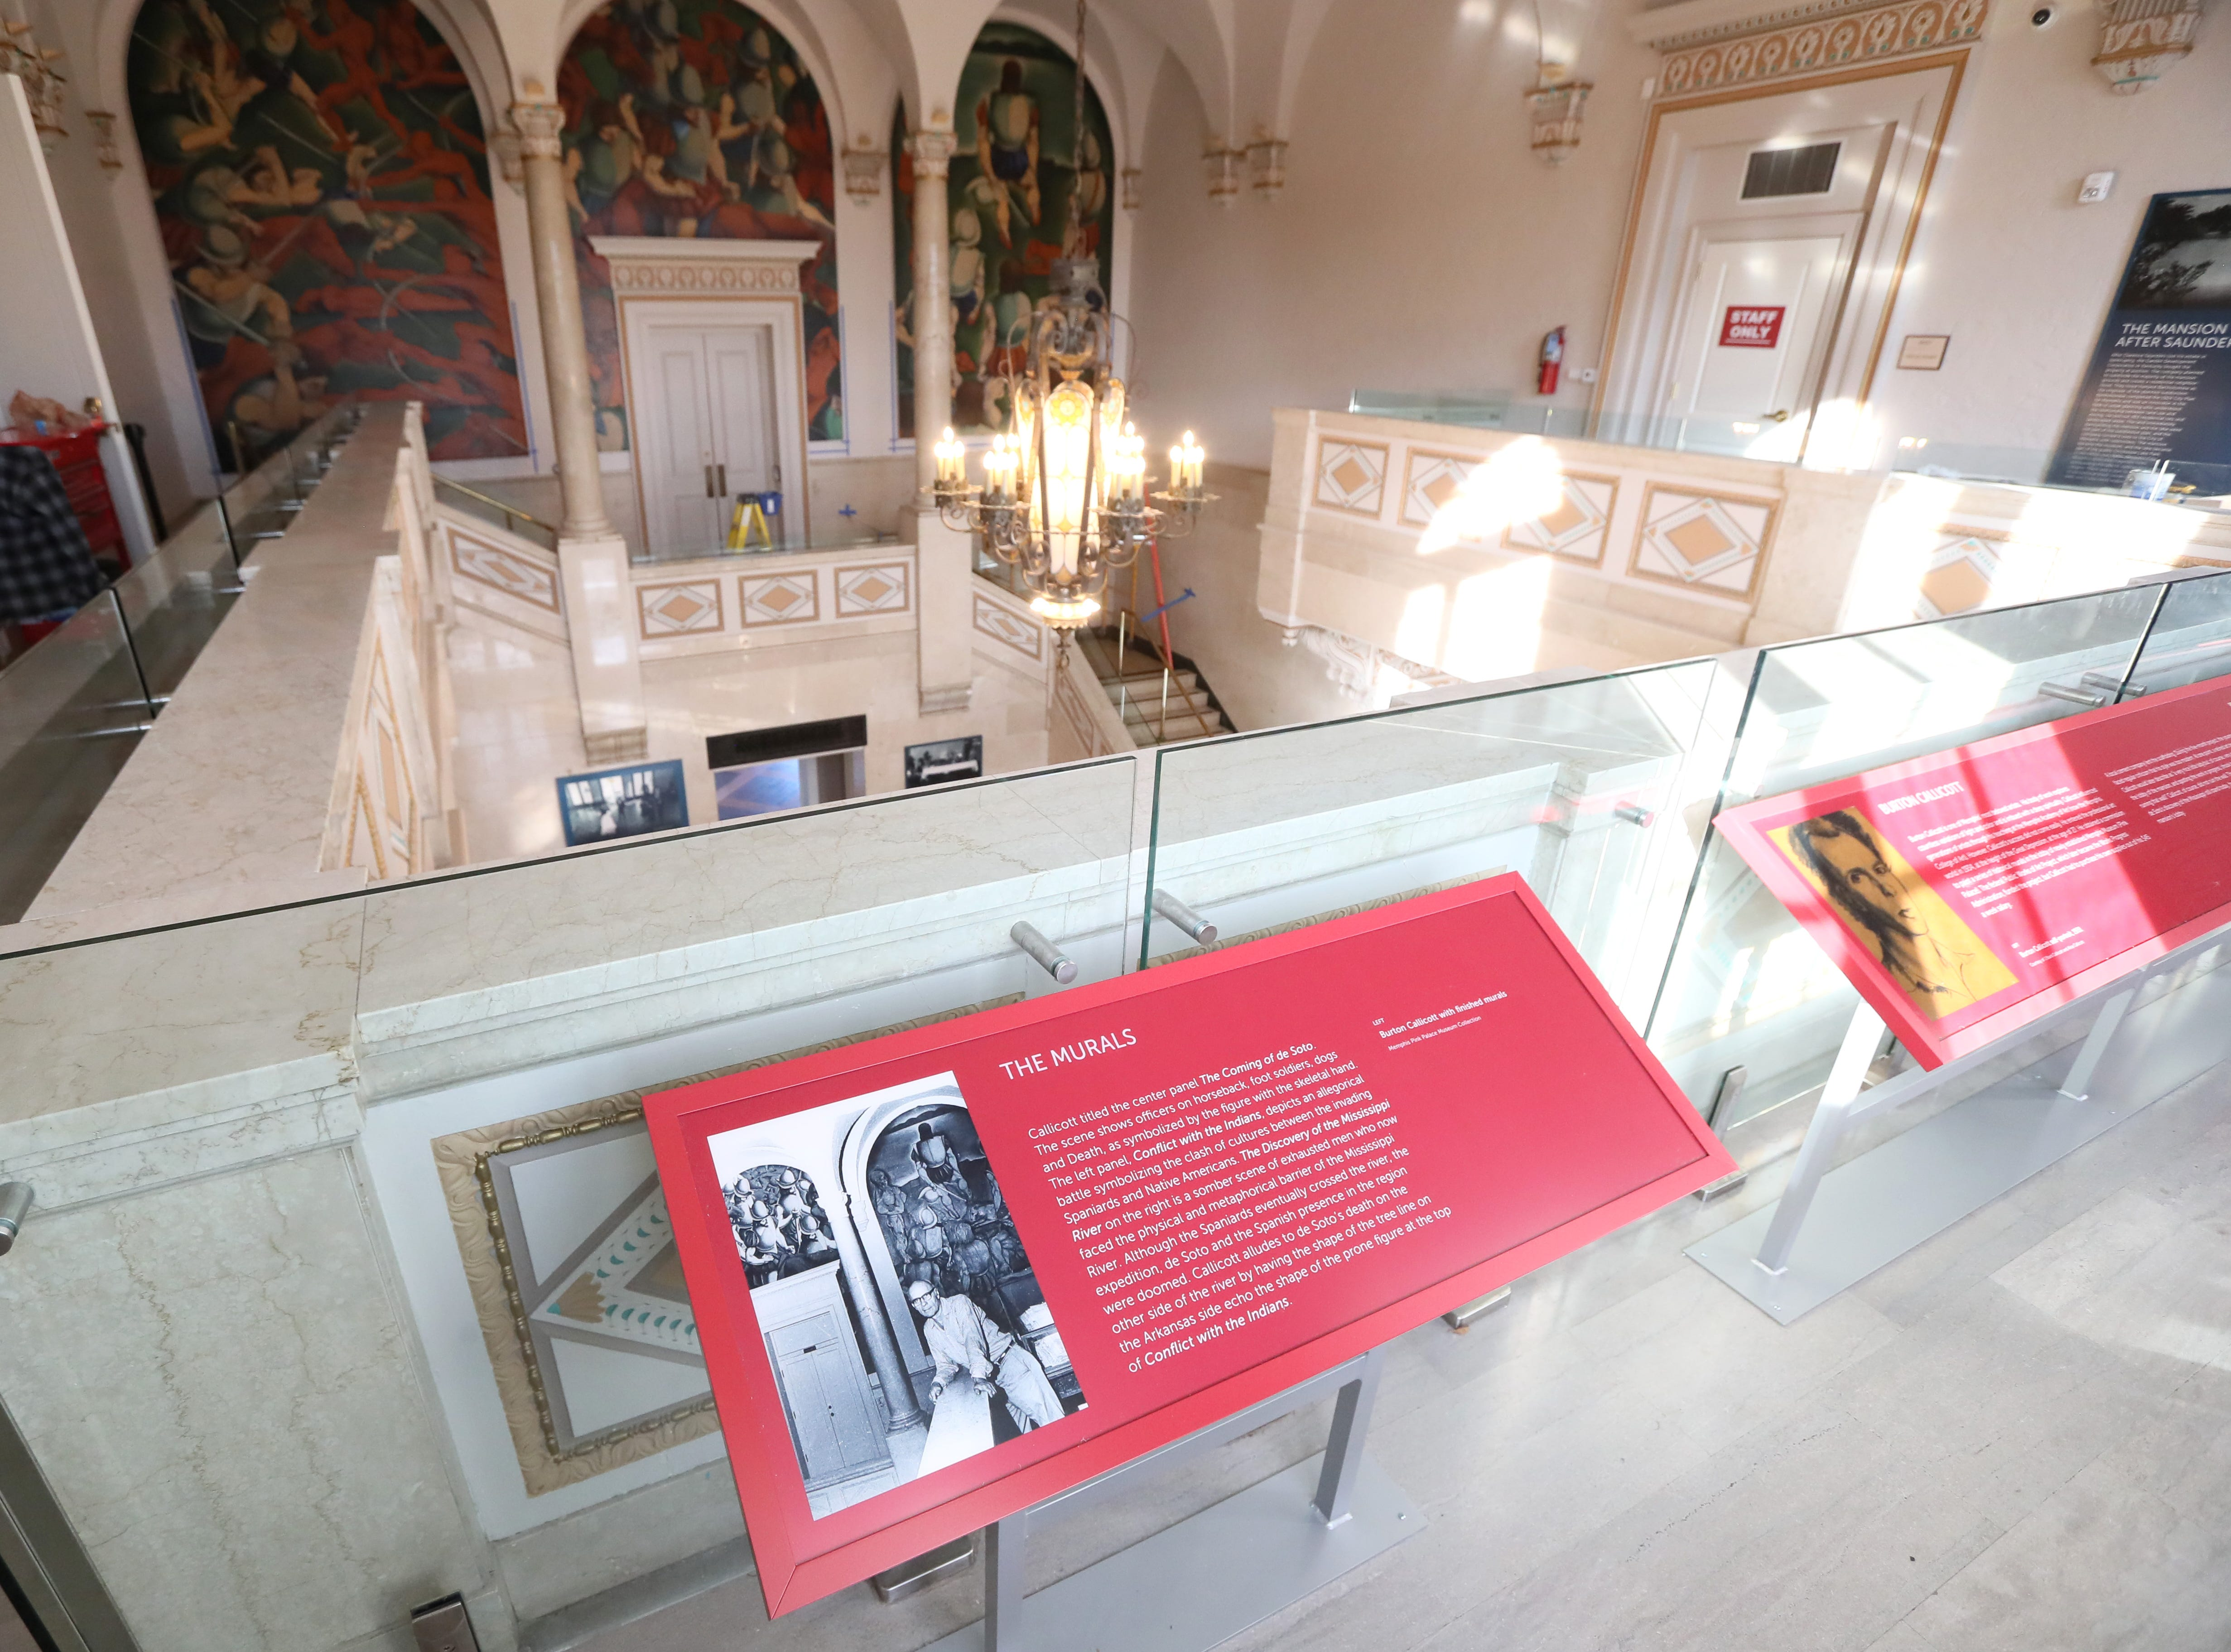 The Pink Palace Museum's nearly two-year renovation phase is completed with a restored Clyde Parke Miniature Circus, an original Piggly Wiggly replica store and a multi-million dollar overhaul, set to re-open the original mansion space to the public with a VIP reception on Wednesday, Dec. 5, 2018.